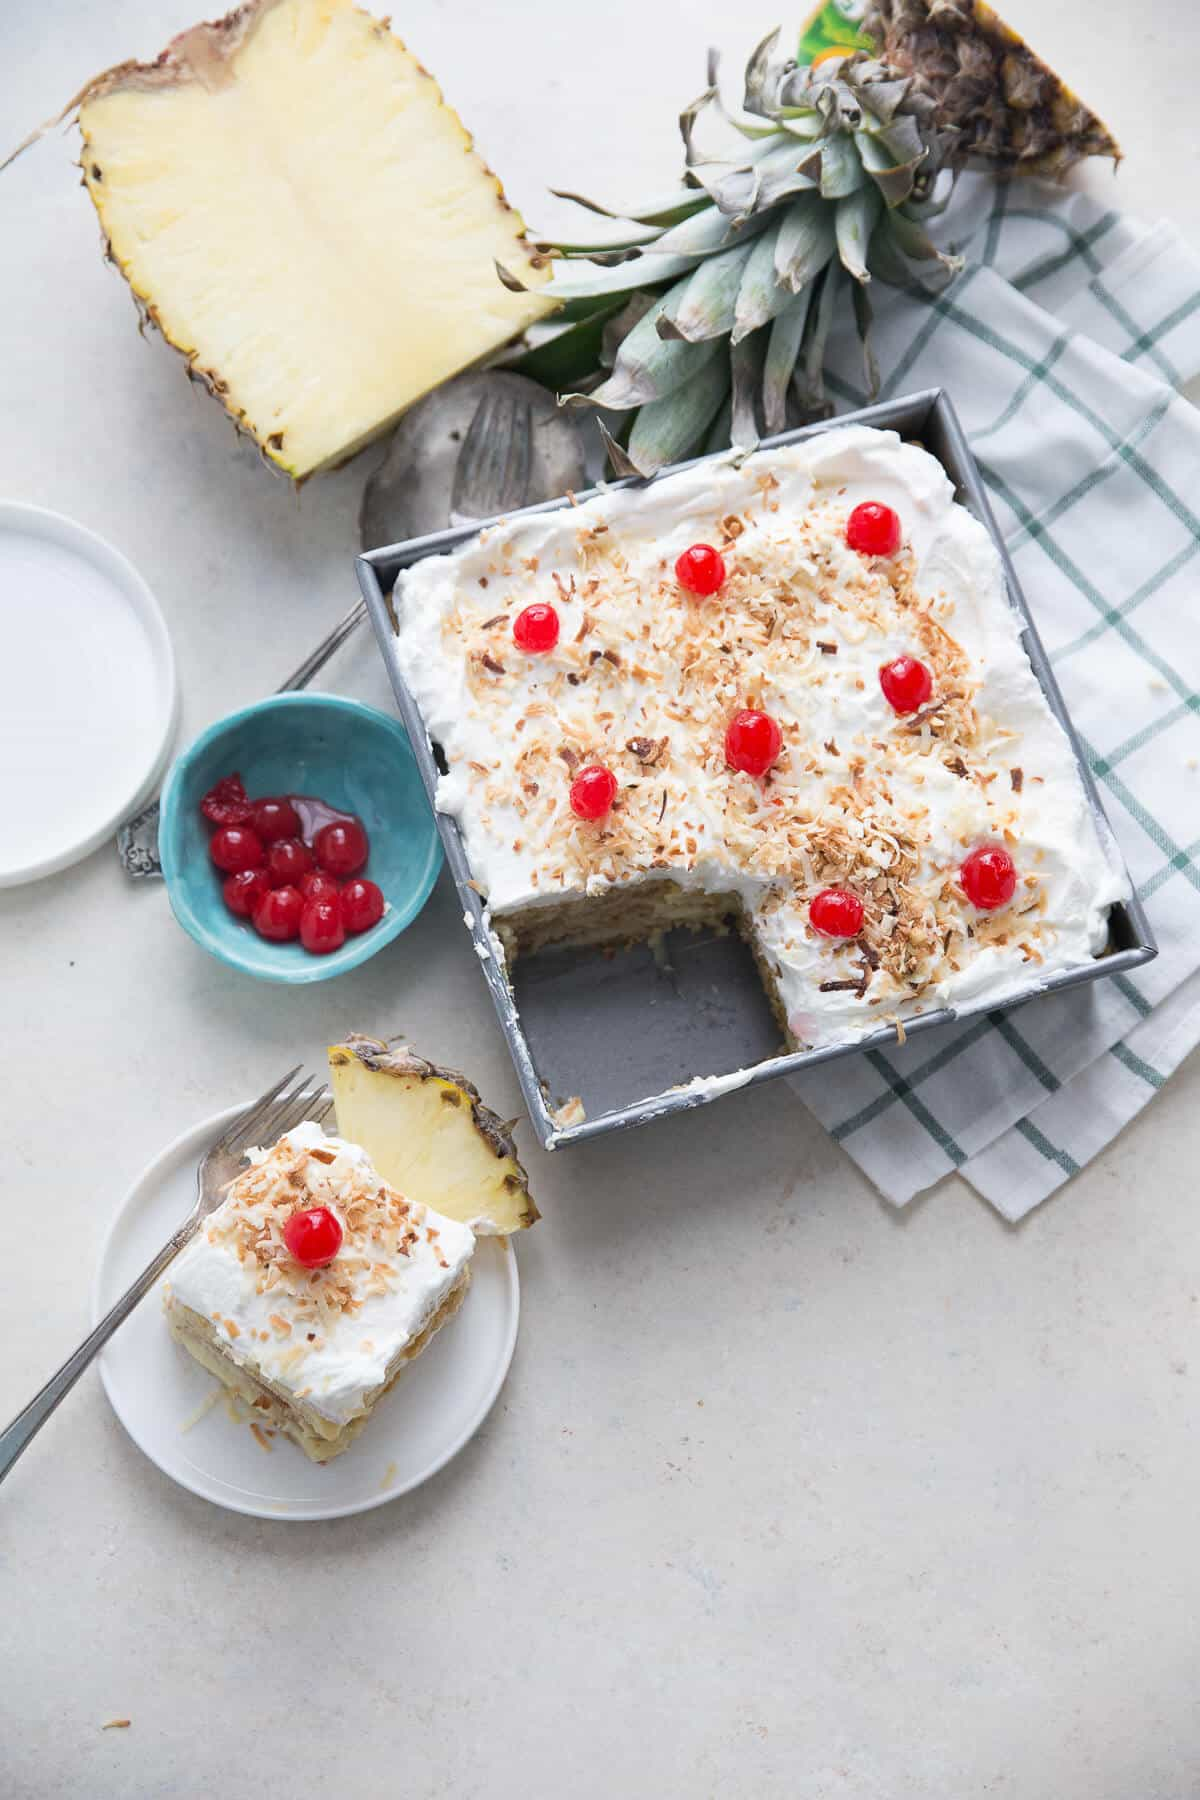 Love pina coladas? Then you will love the sweet pineapple filling and the coconut whipped cream in this easy no bake box cake